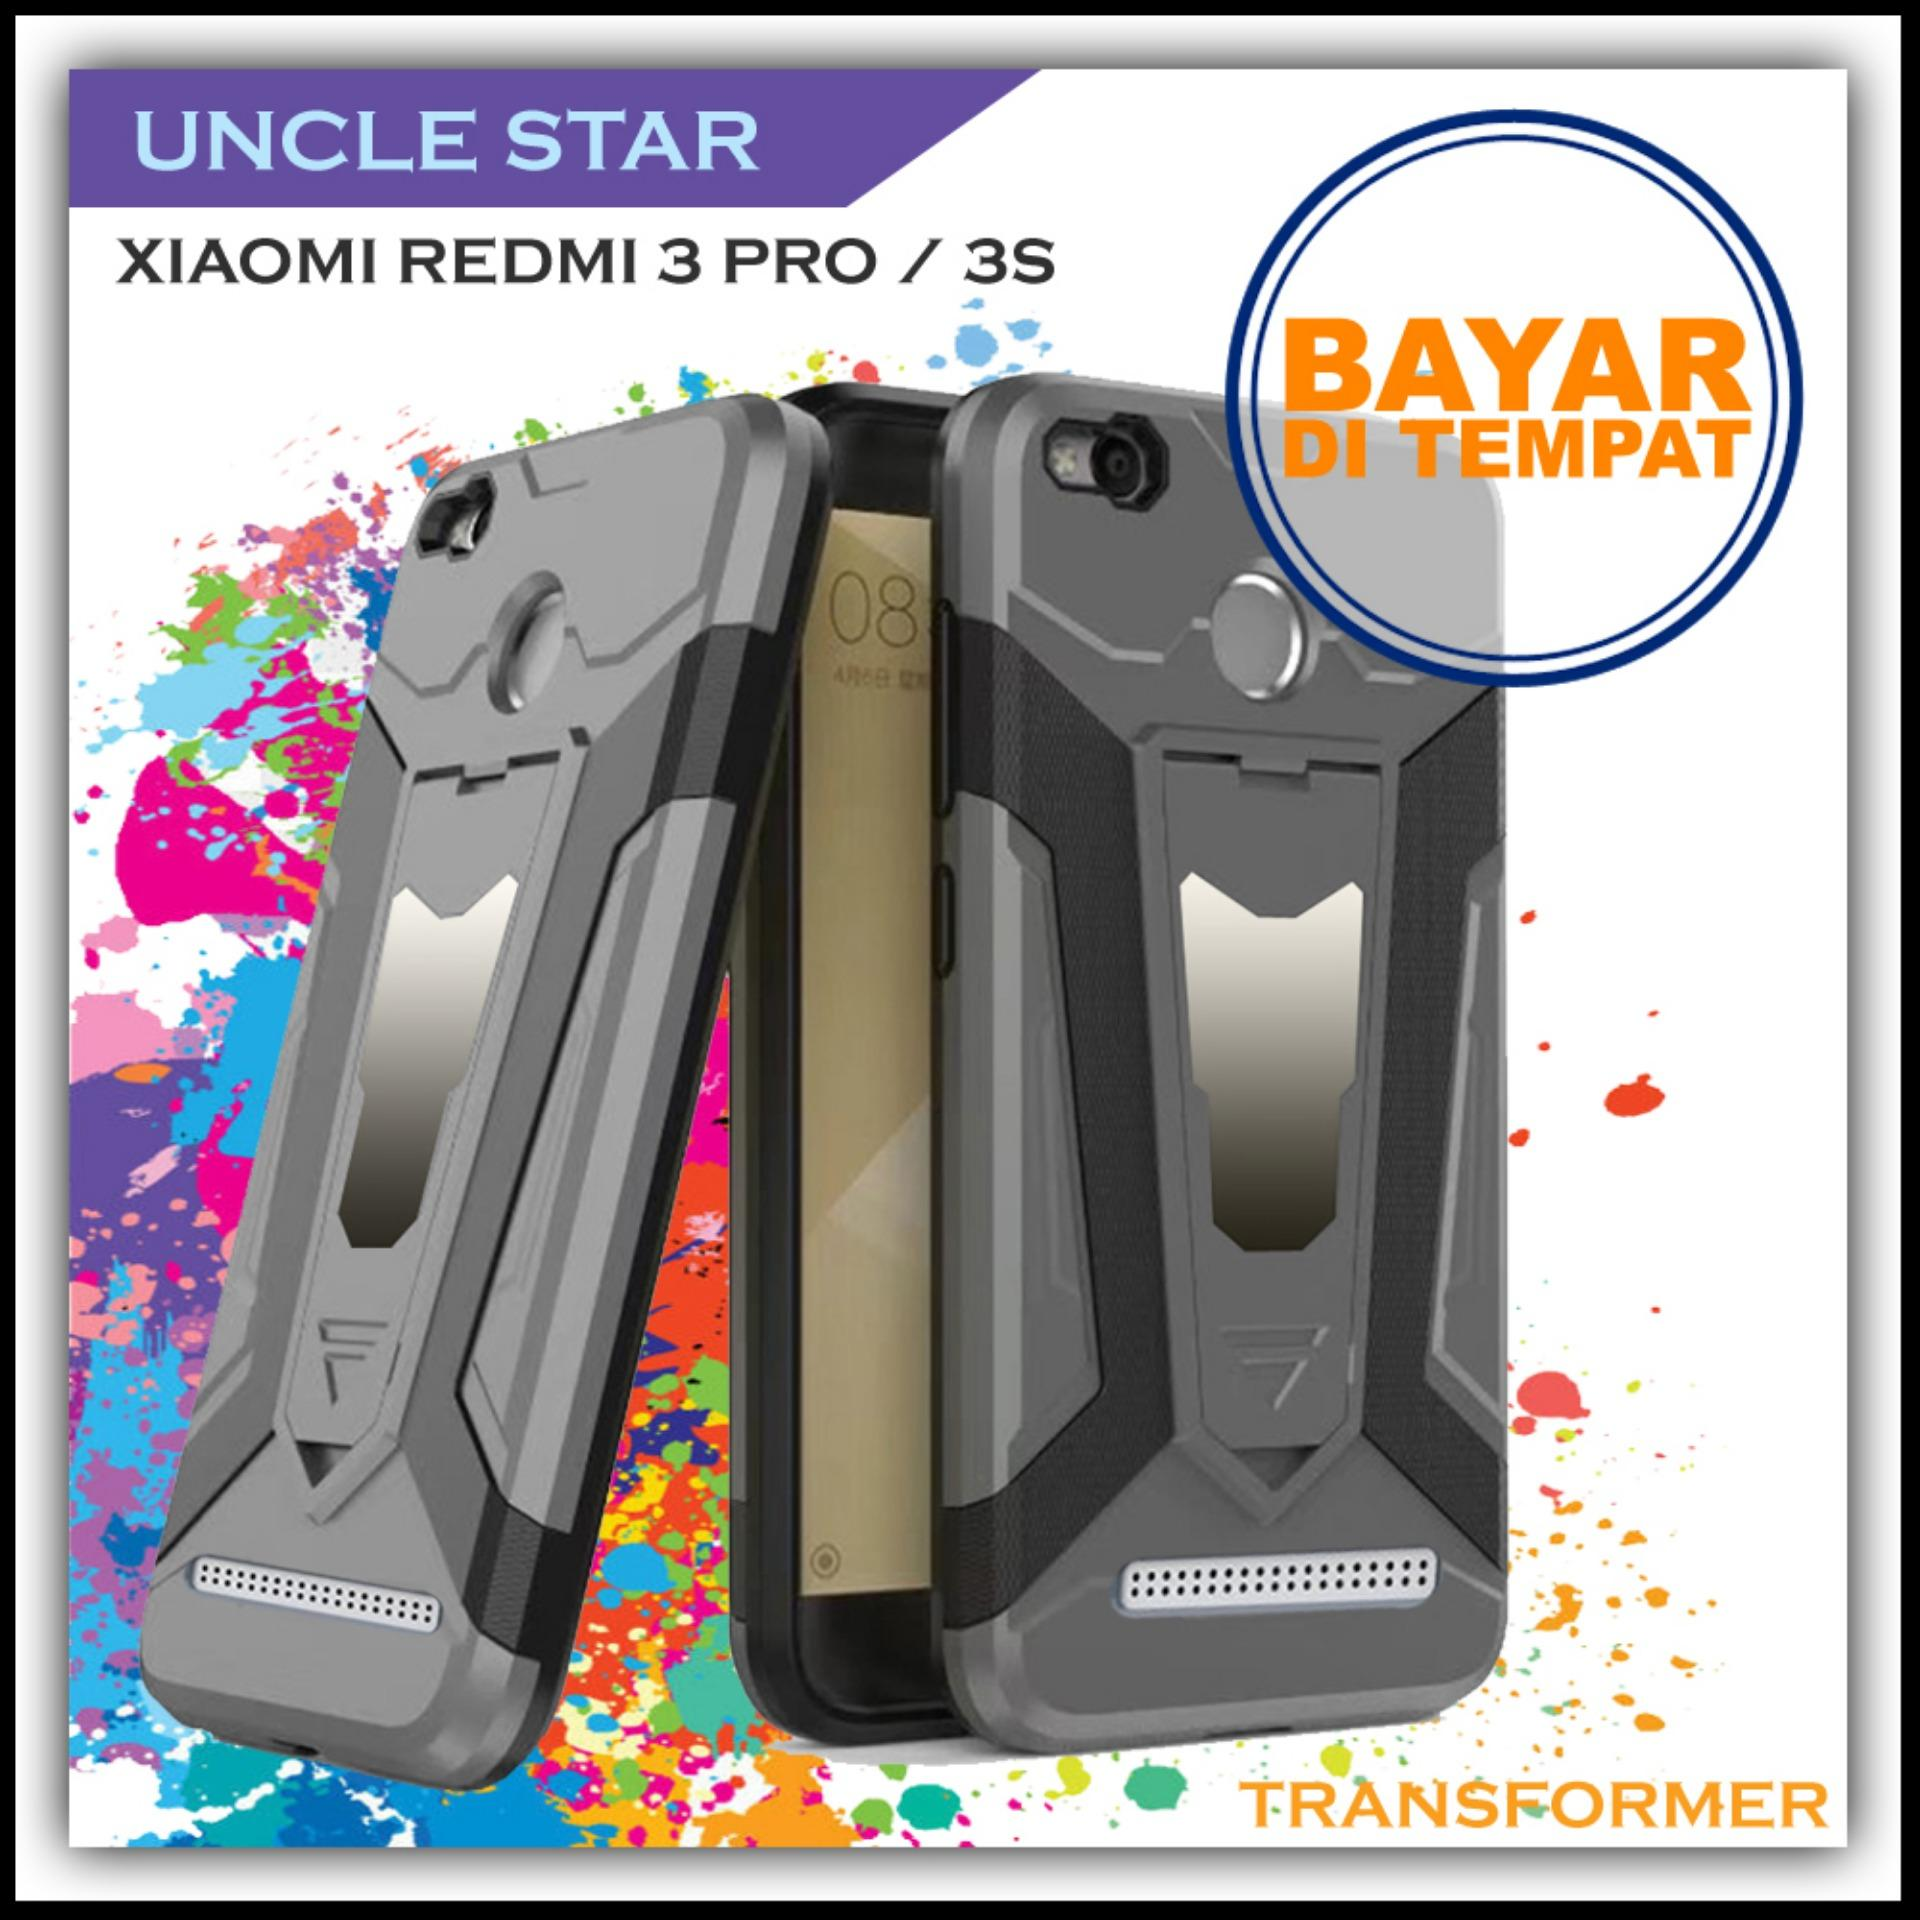 Uncle Star -HARDCASE For Xiaomi Redmi 3 Pro / 3S Pro Robot Transformer Ironman Limited